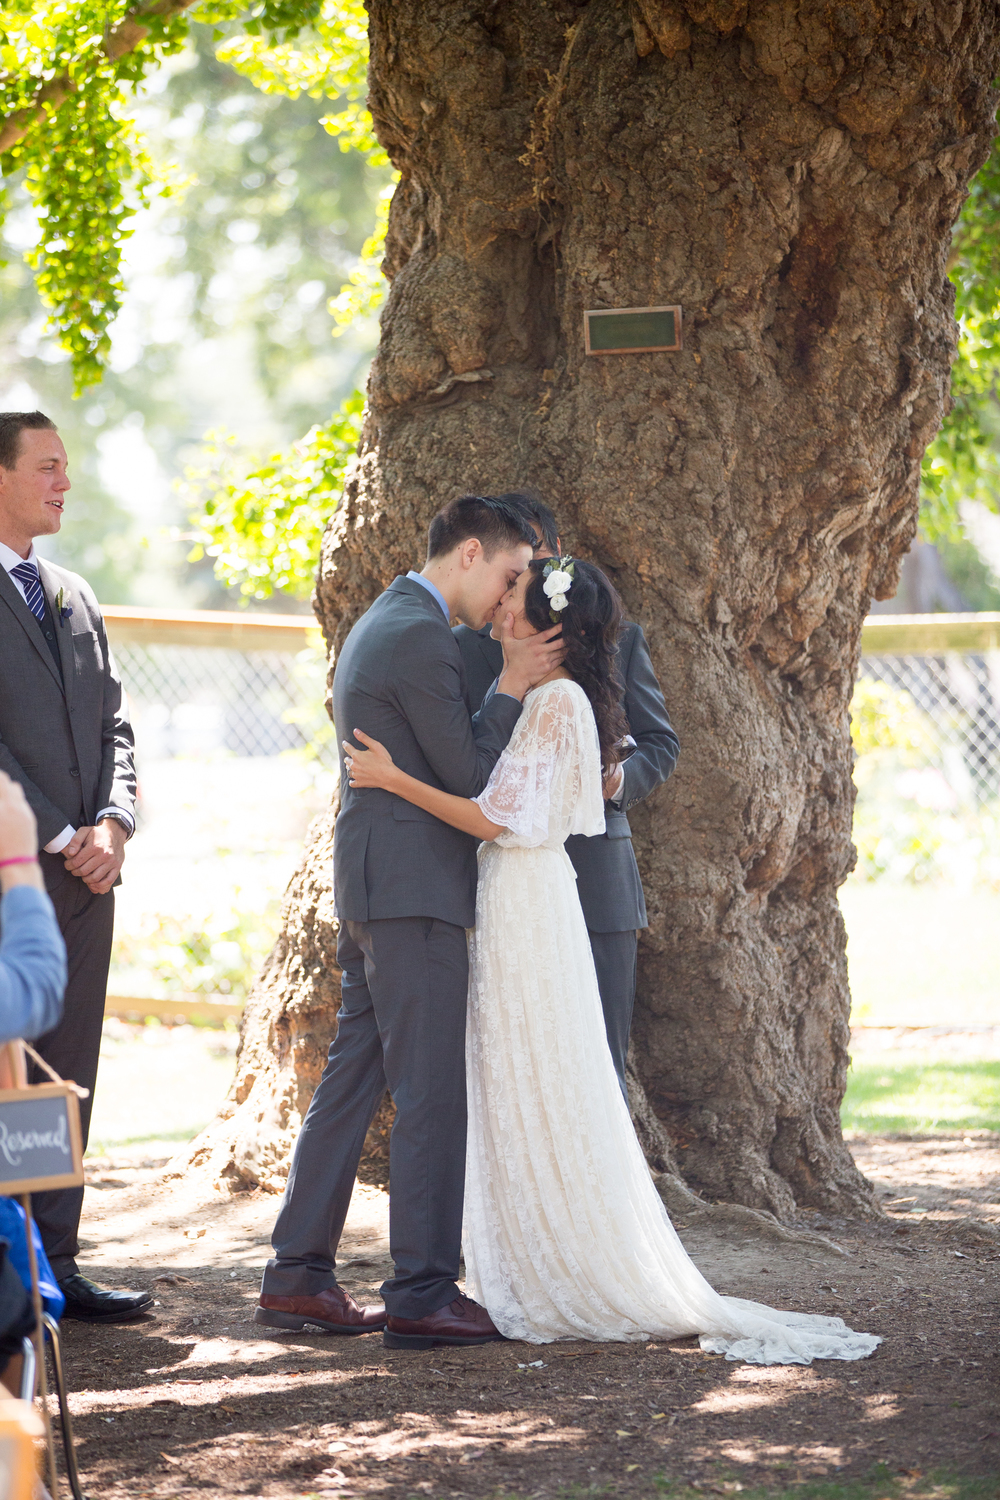 Chico California Wedding and Engagement Photography by TréCreative - Fremont Wedding Photography (182 of 261).jpg